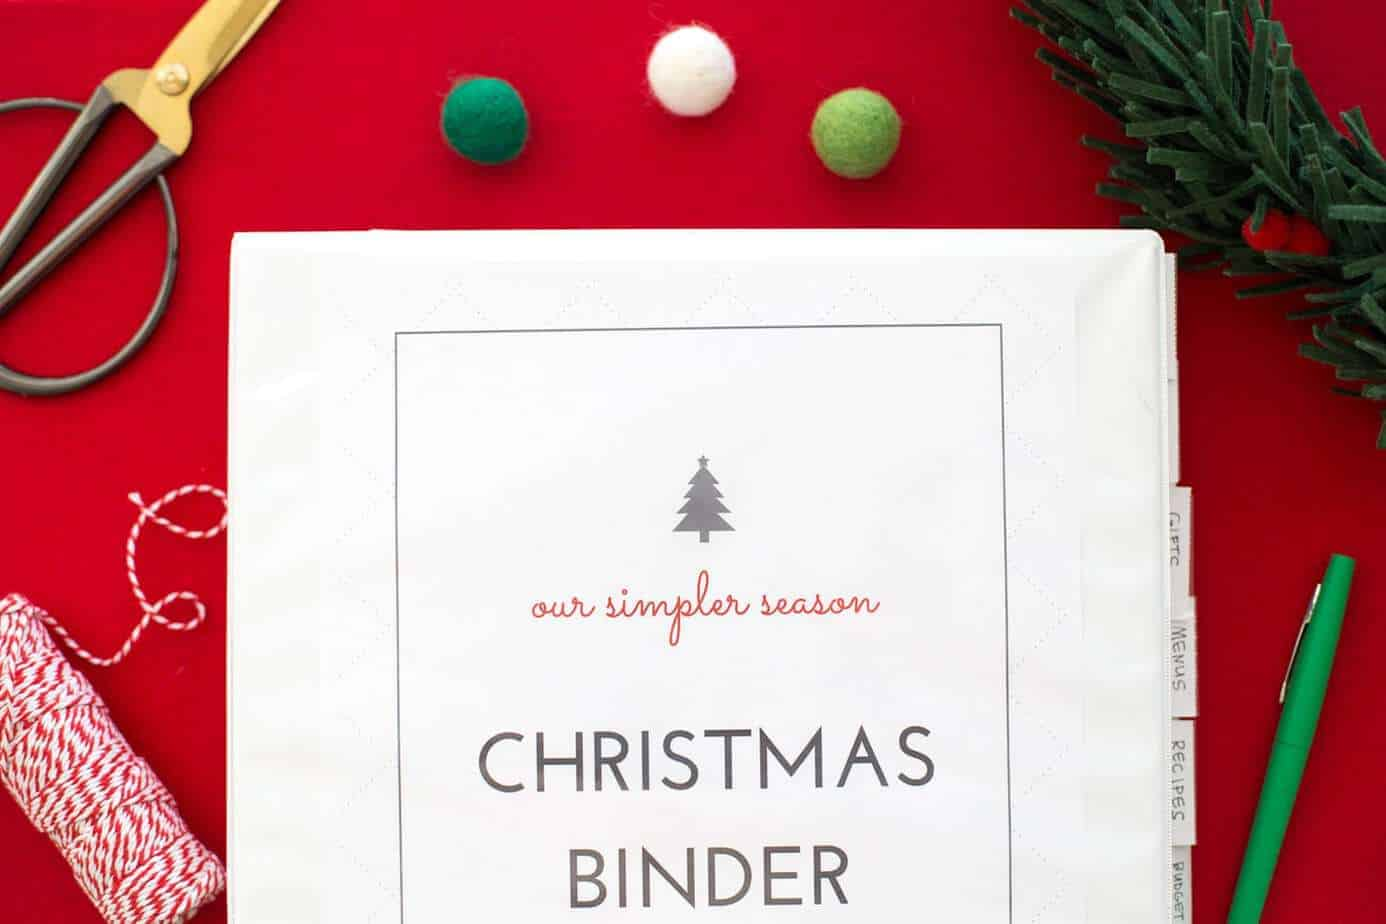 2020 Easy Printable Christmas Organizer Simplify Christmas In 7 Easy Steps (2020)  So Festive!